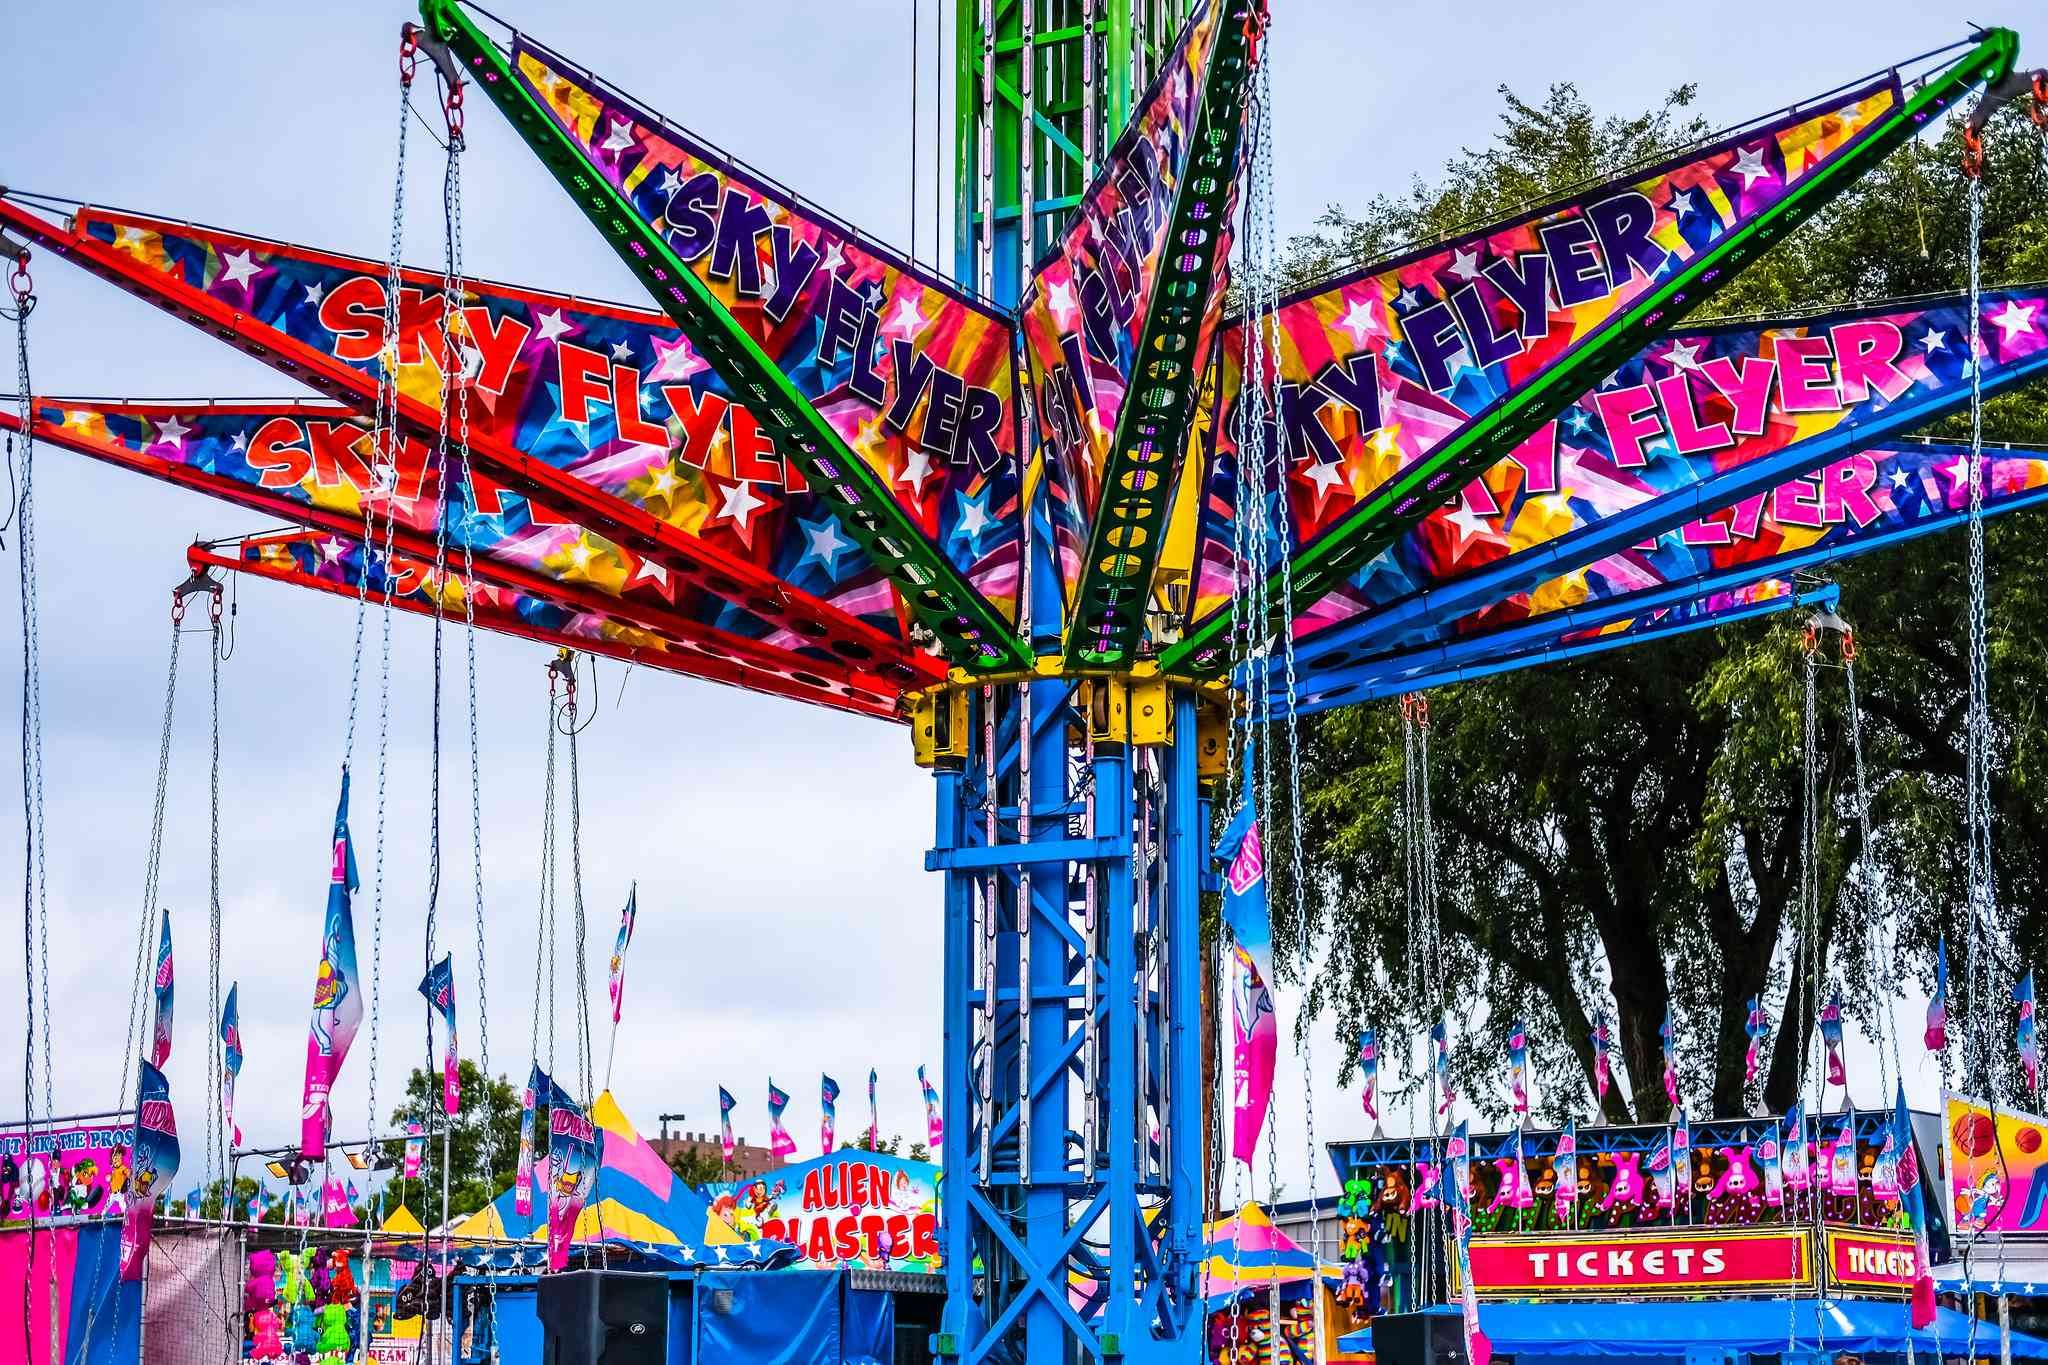 The Minnesota State Fair draws almost two million people annually.